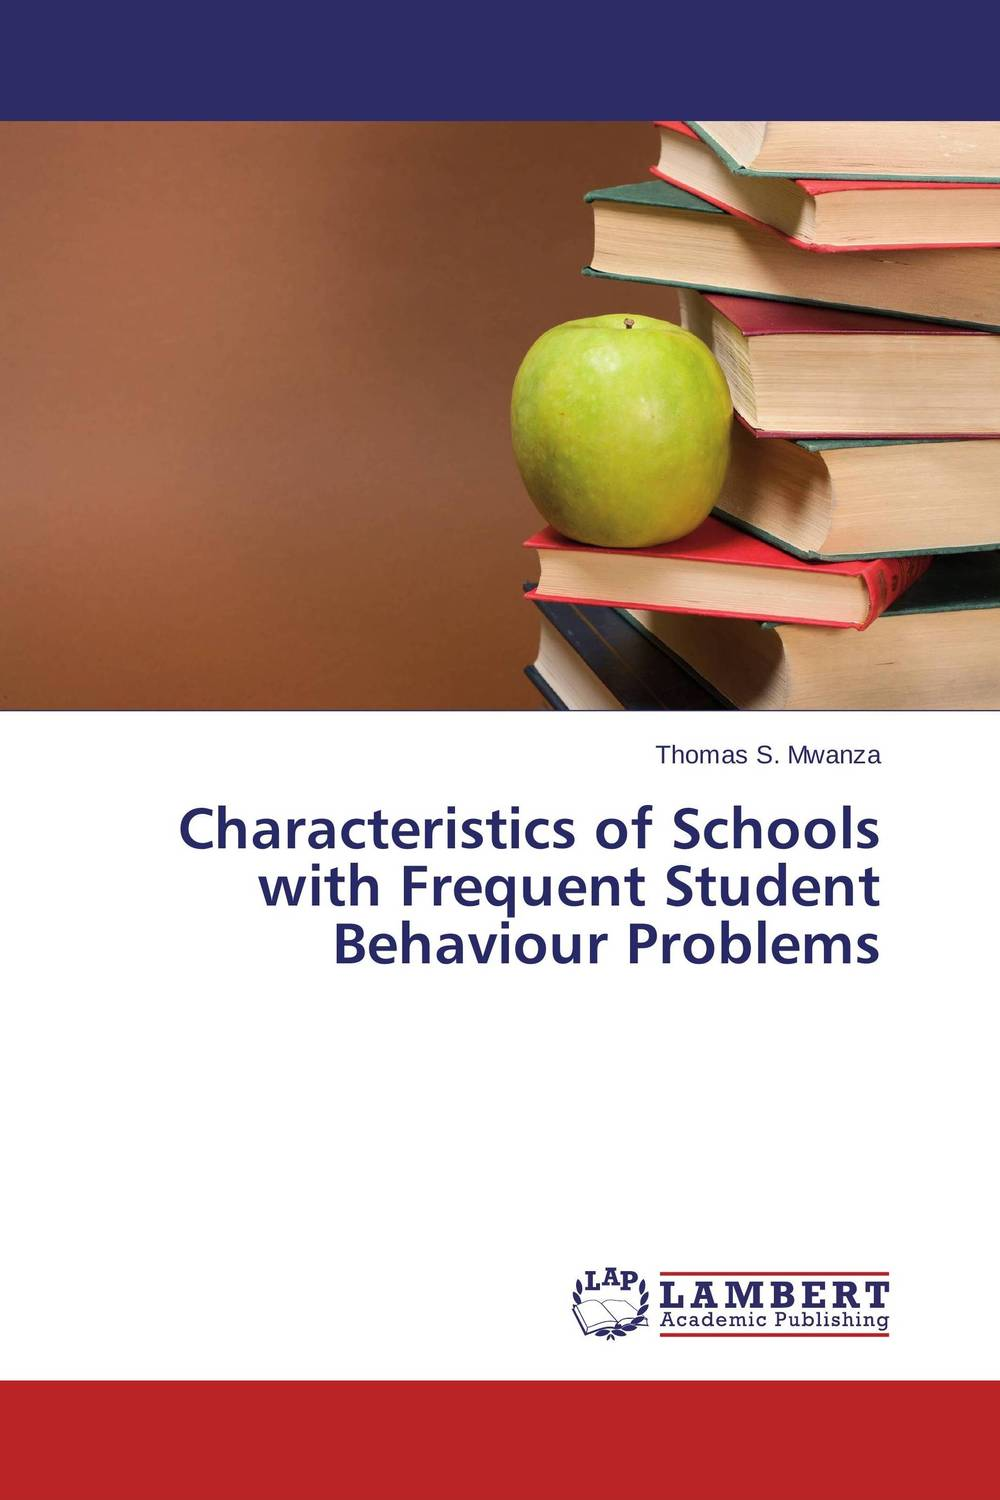 Characteristics of Schools with Frequent Student Behaviour Problems fundamentals of physics extended 9th edition international student version with wileyplus set